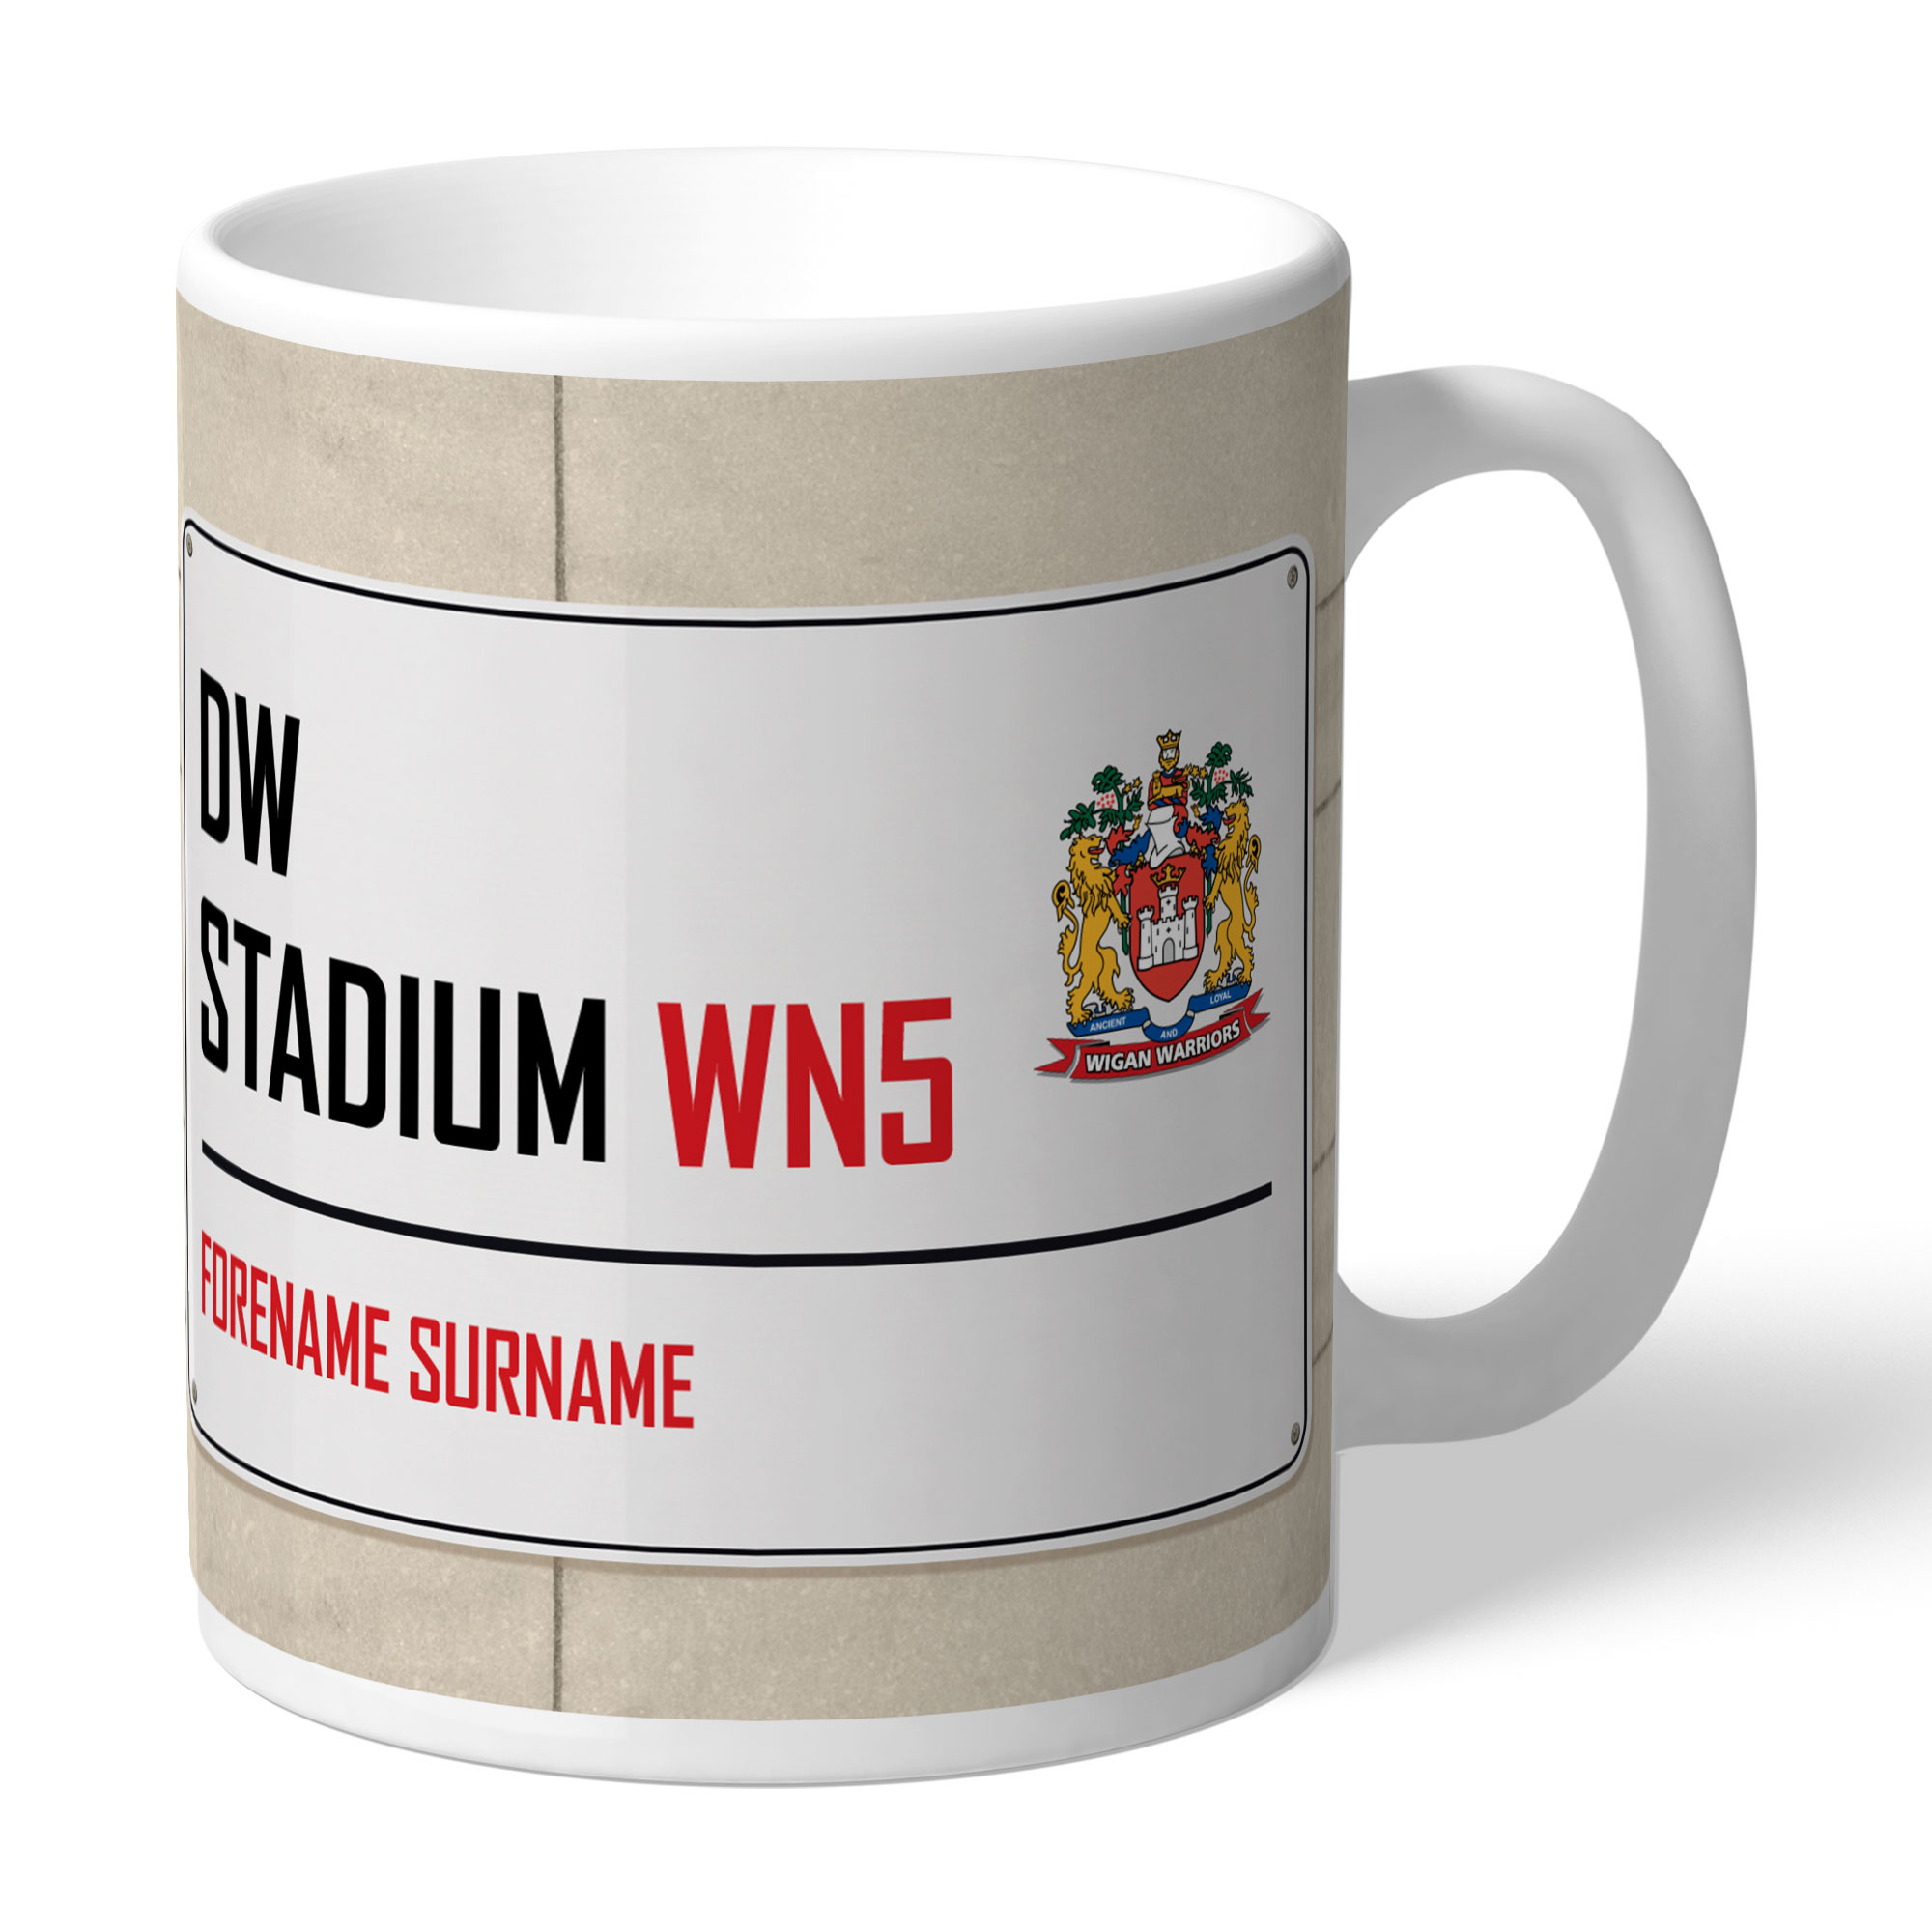 Wigan Warriors Street Sign Mug